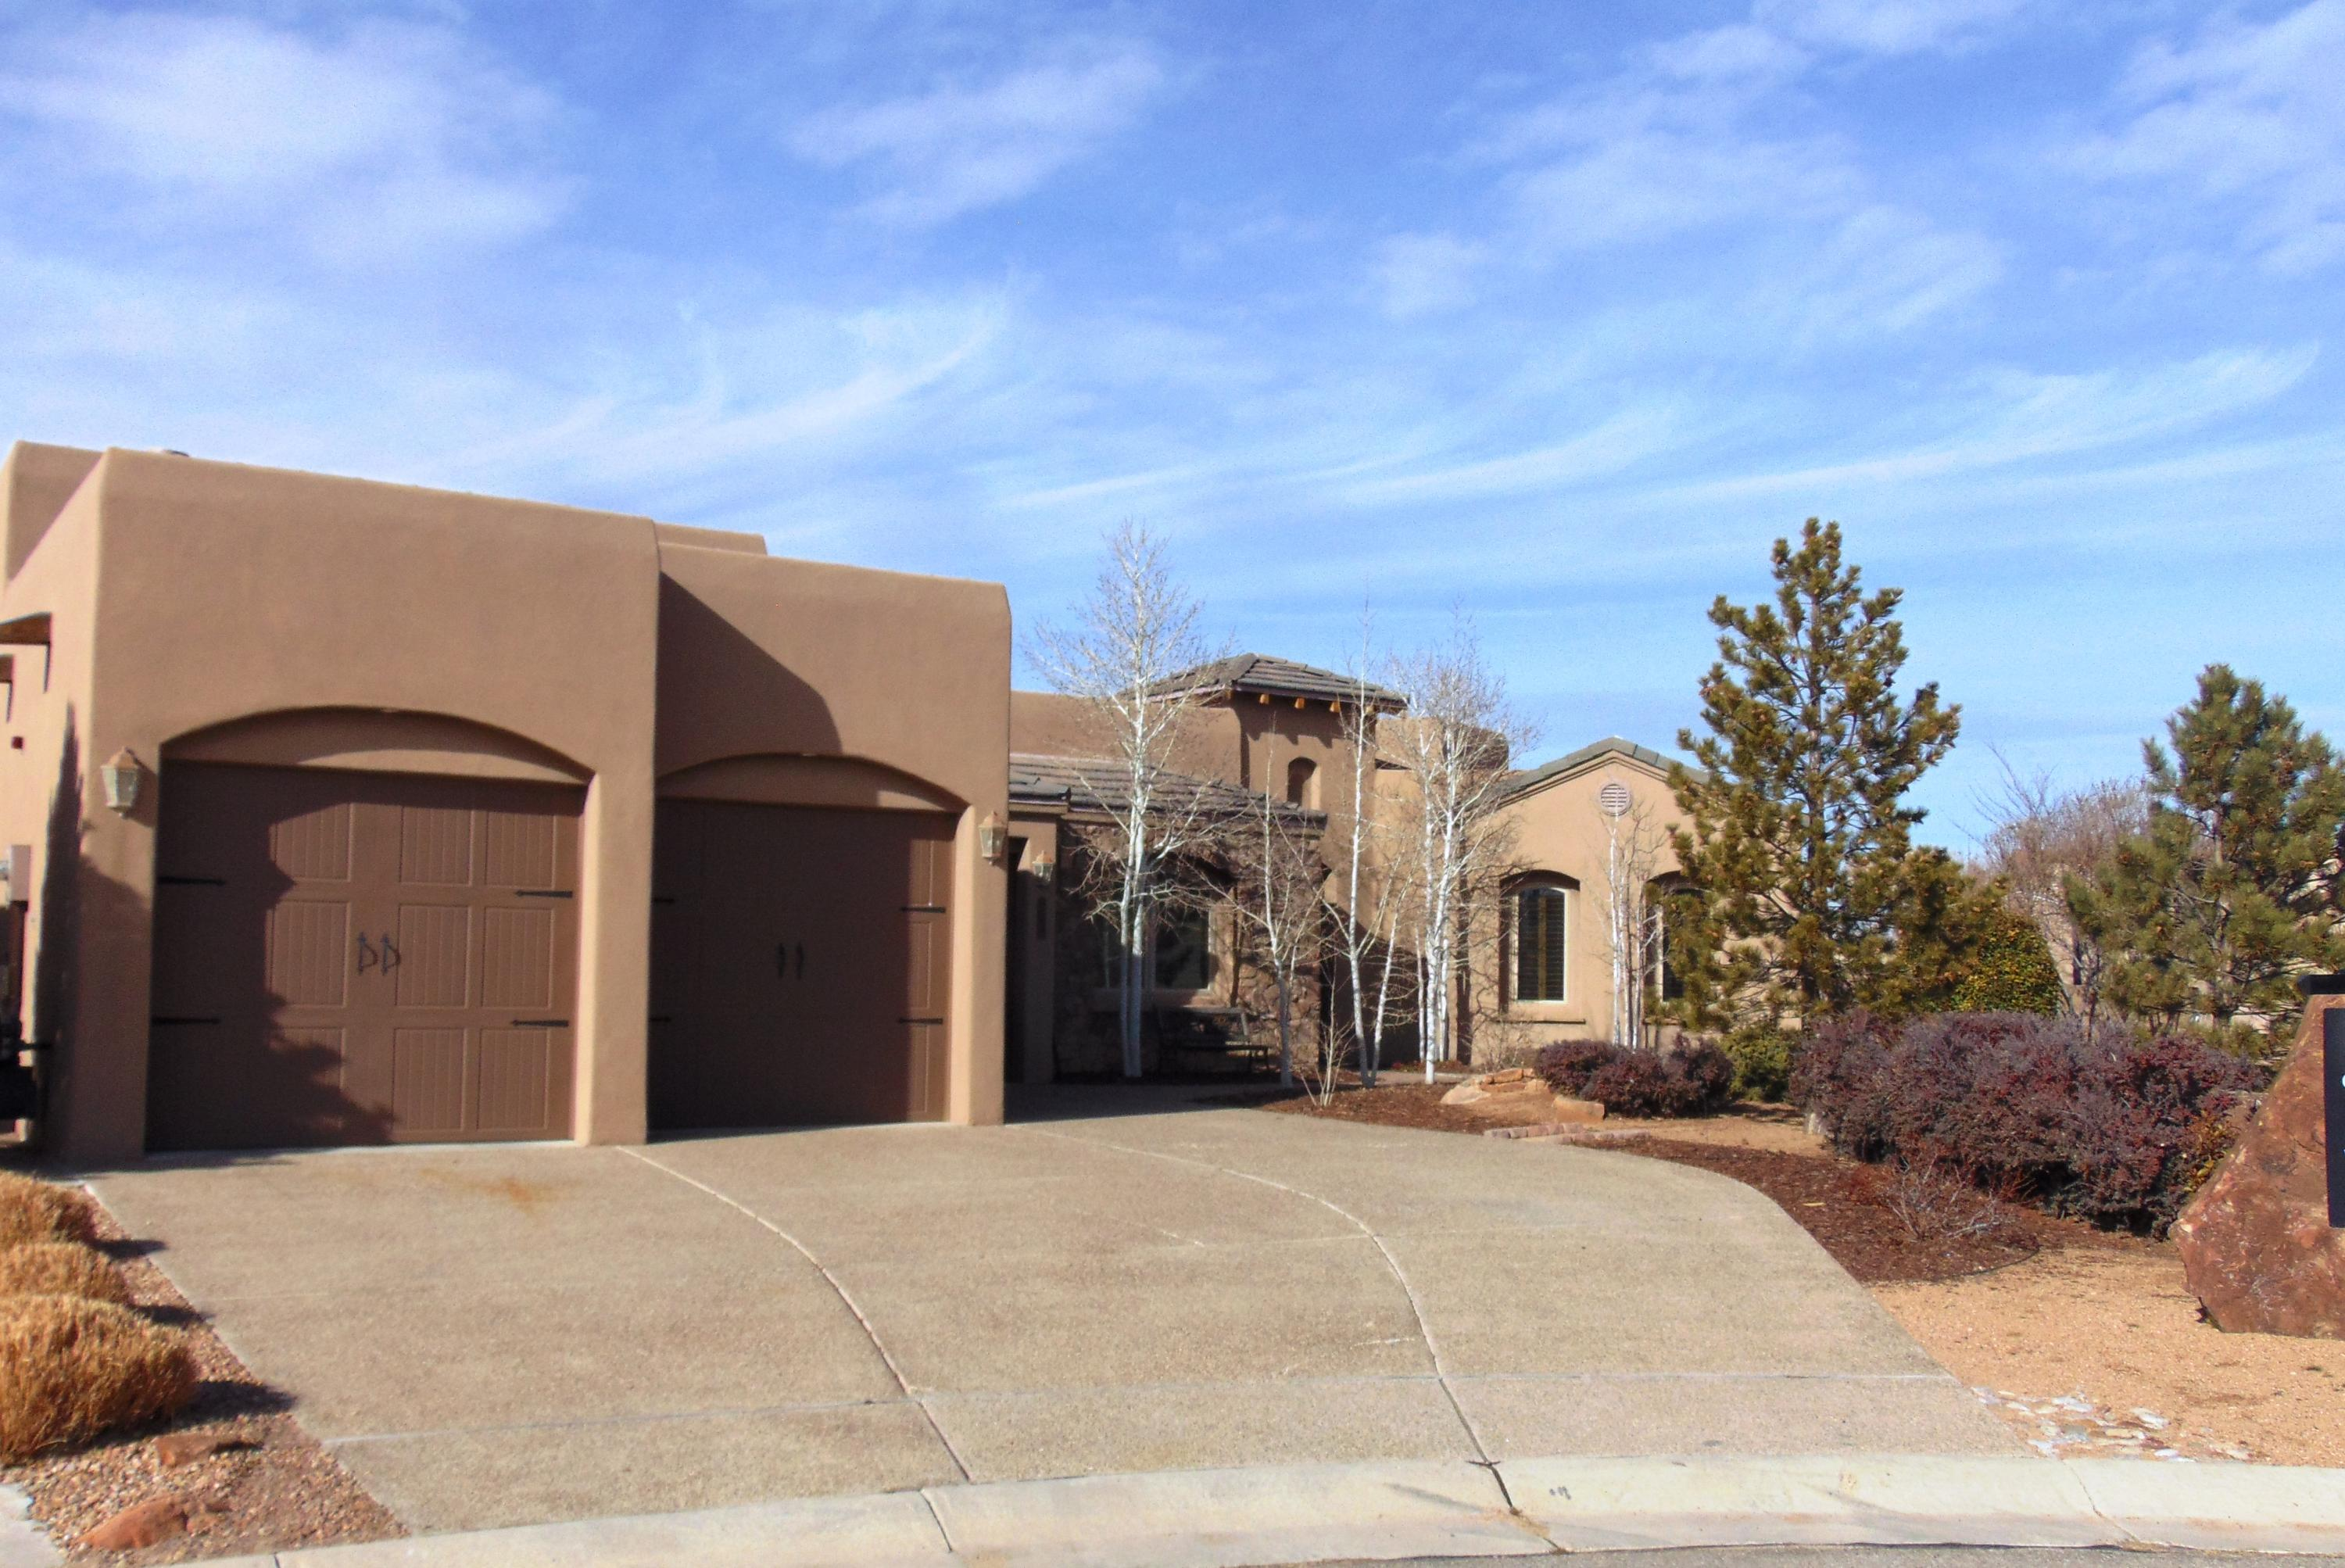 8223 DESERT PLUME LANE NE, ALBUQUERQUE, NM 87122